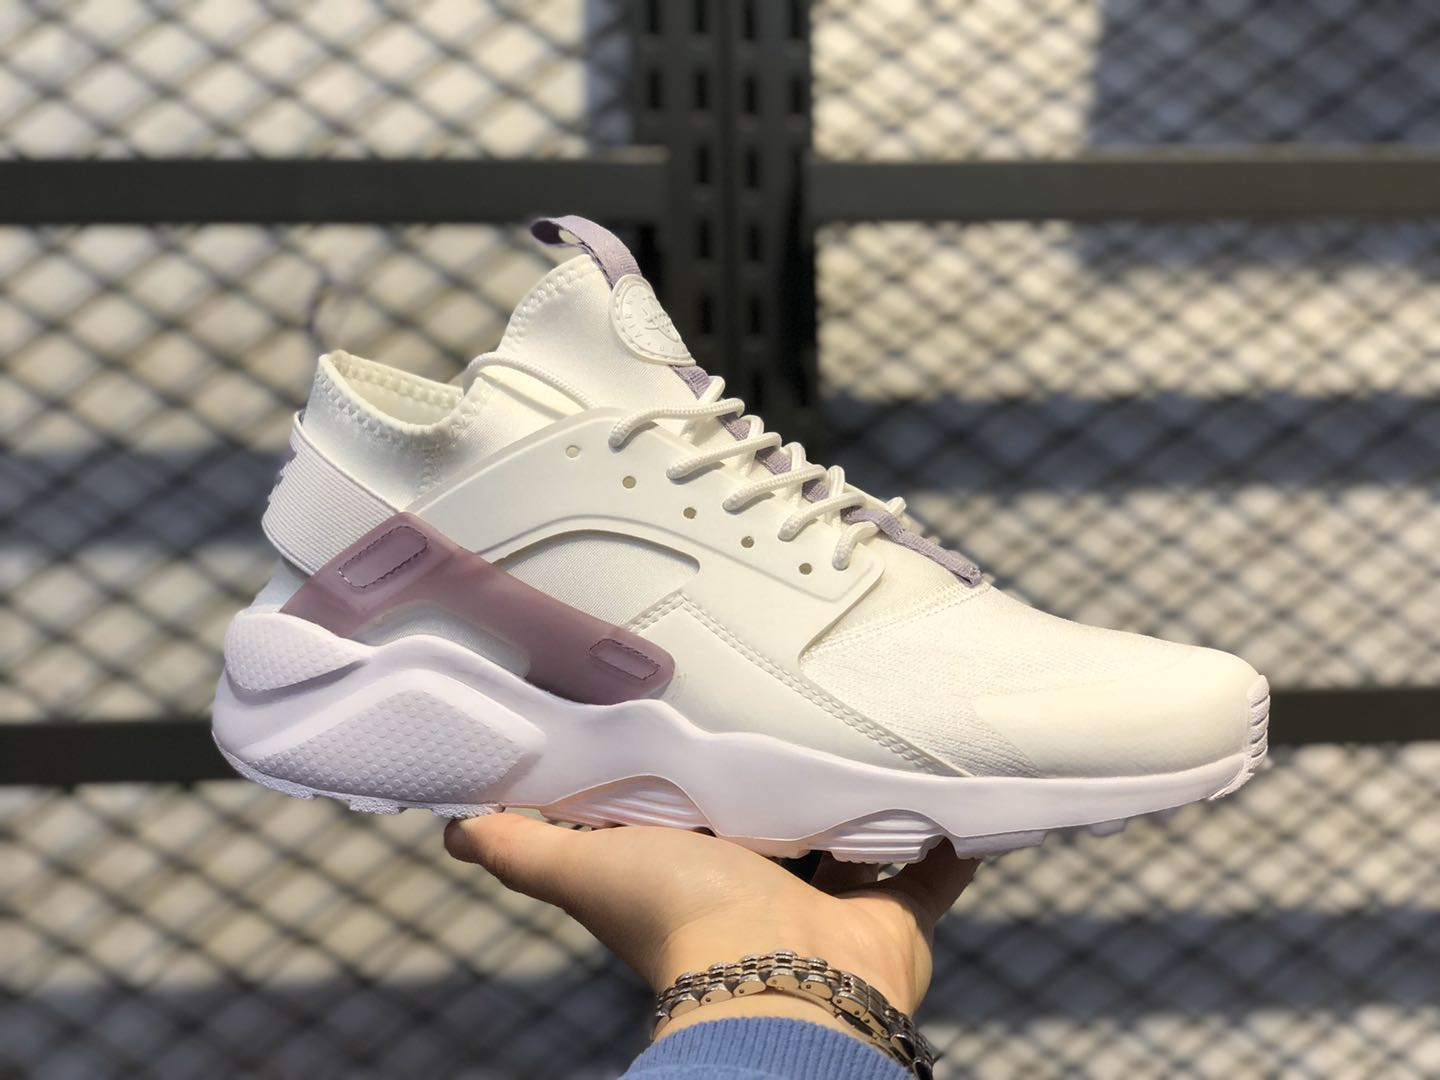 2020 Nike Air Huarache Run Ultra White/Light Purple 847569-997